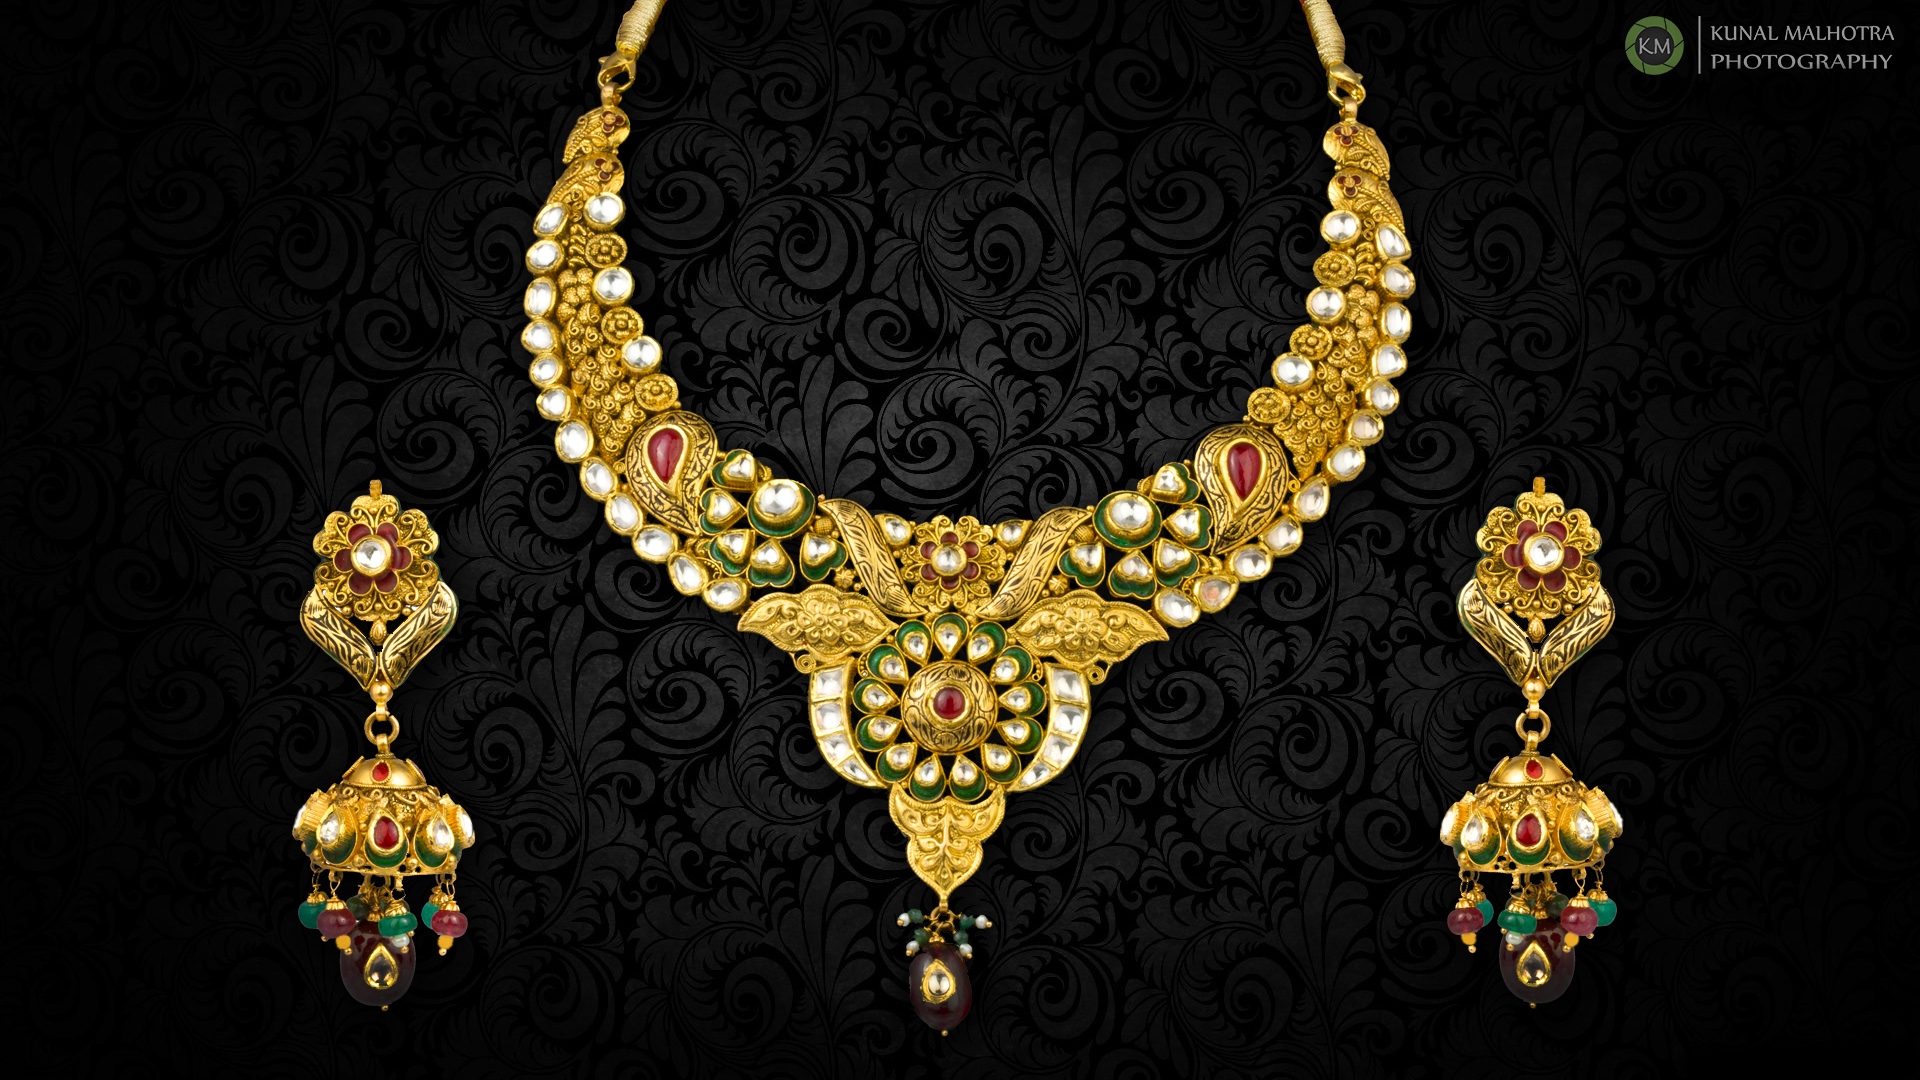 HQ Jewelry Wallpapers | File 1198.49Kb